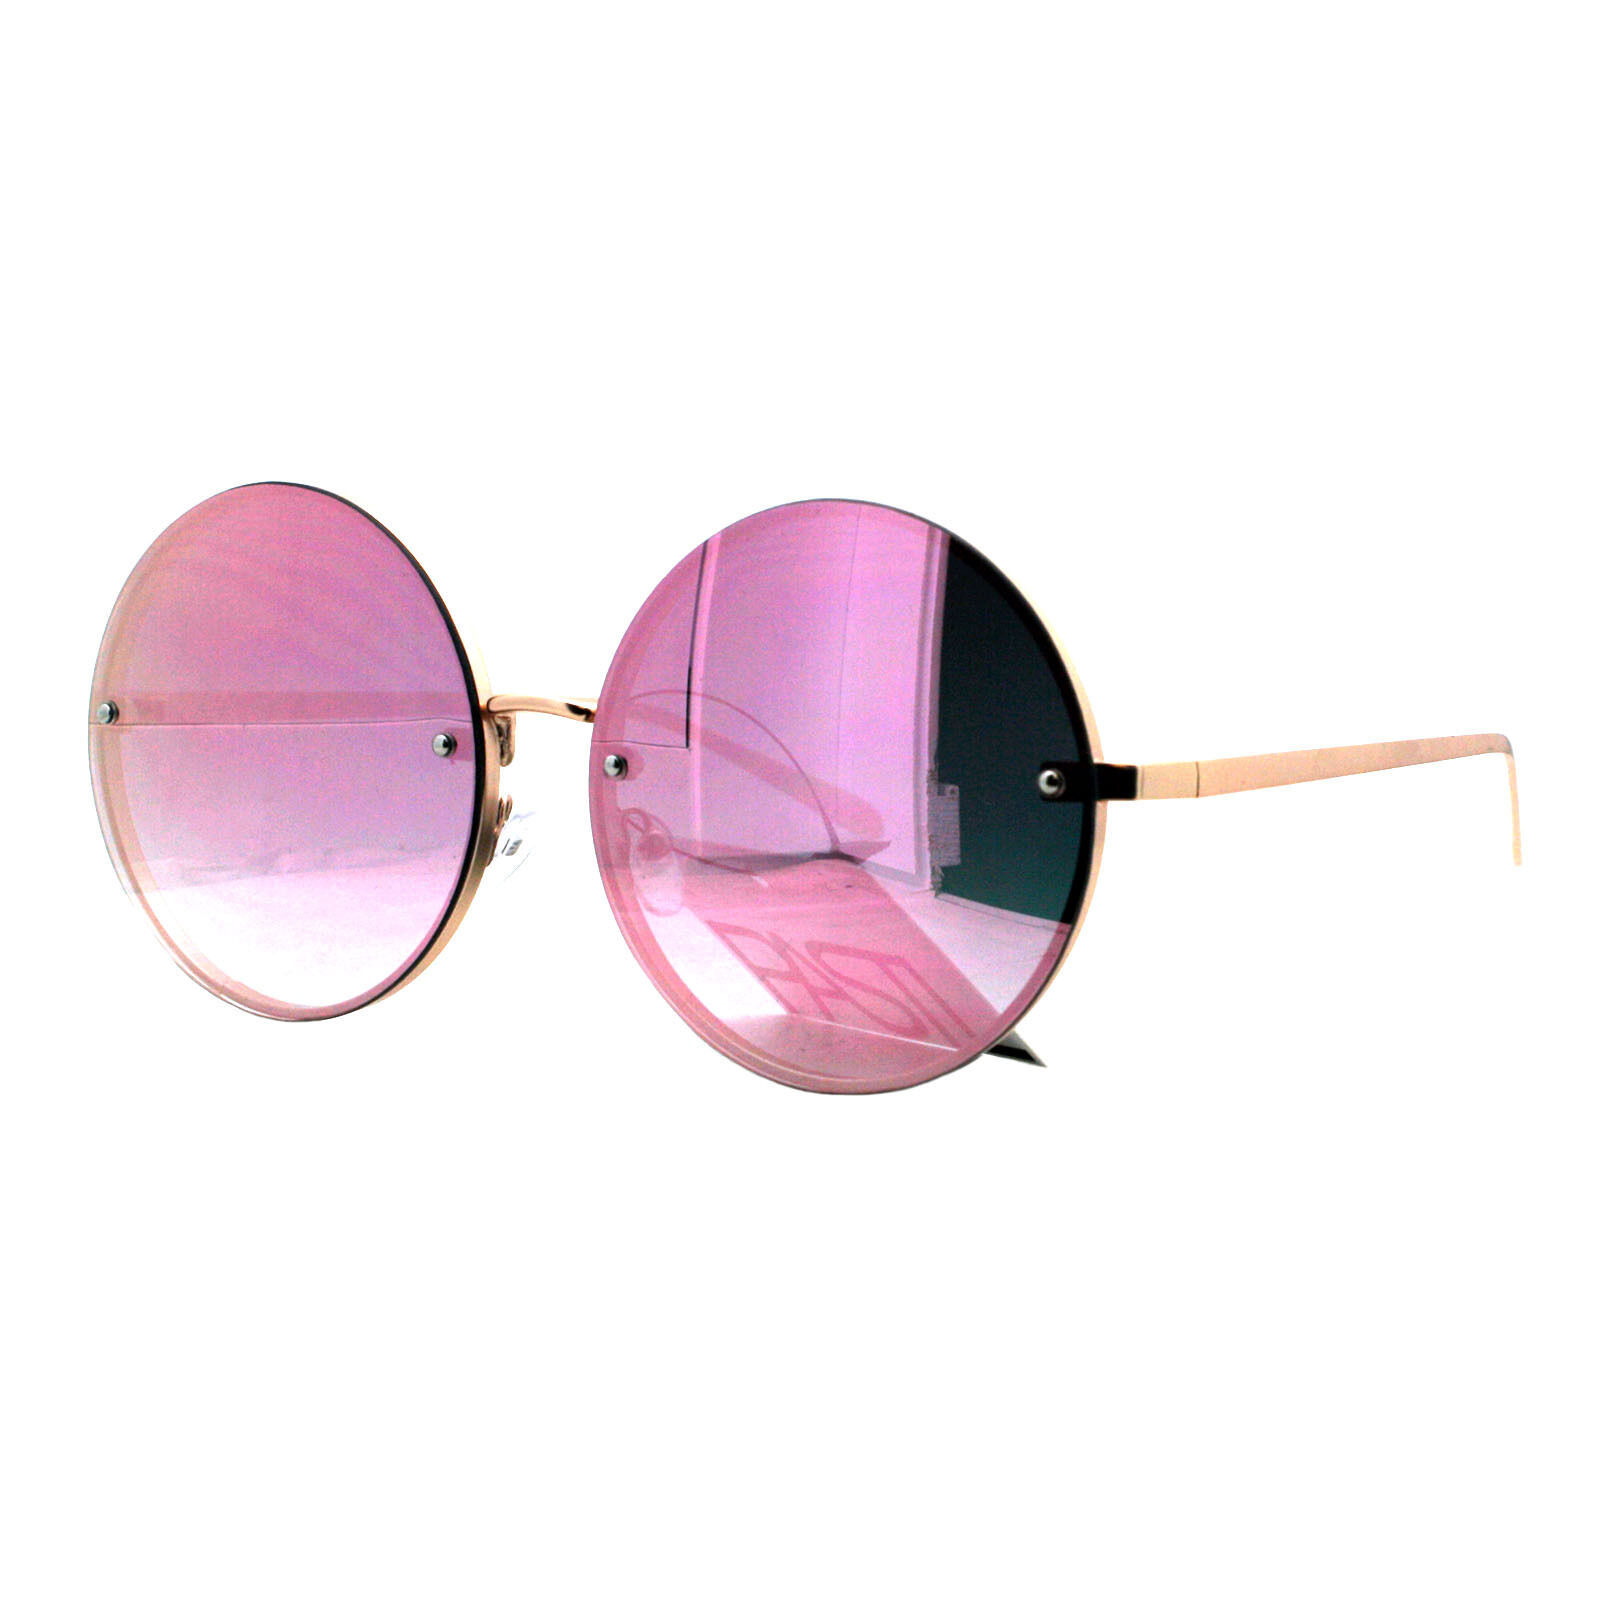 PASTL Super Oversized Round Sunglasses Womens Pink Mirror Lens UV 400 image 8